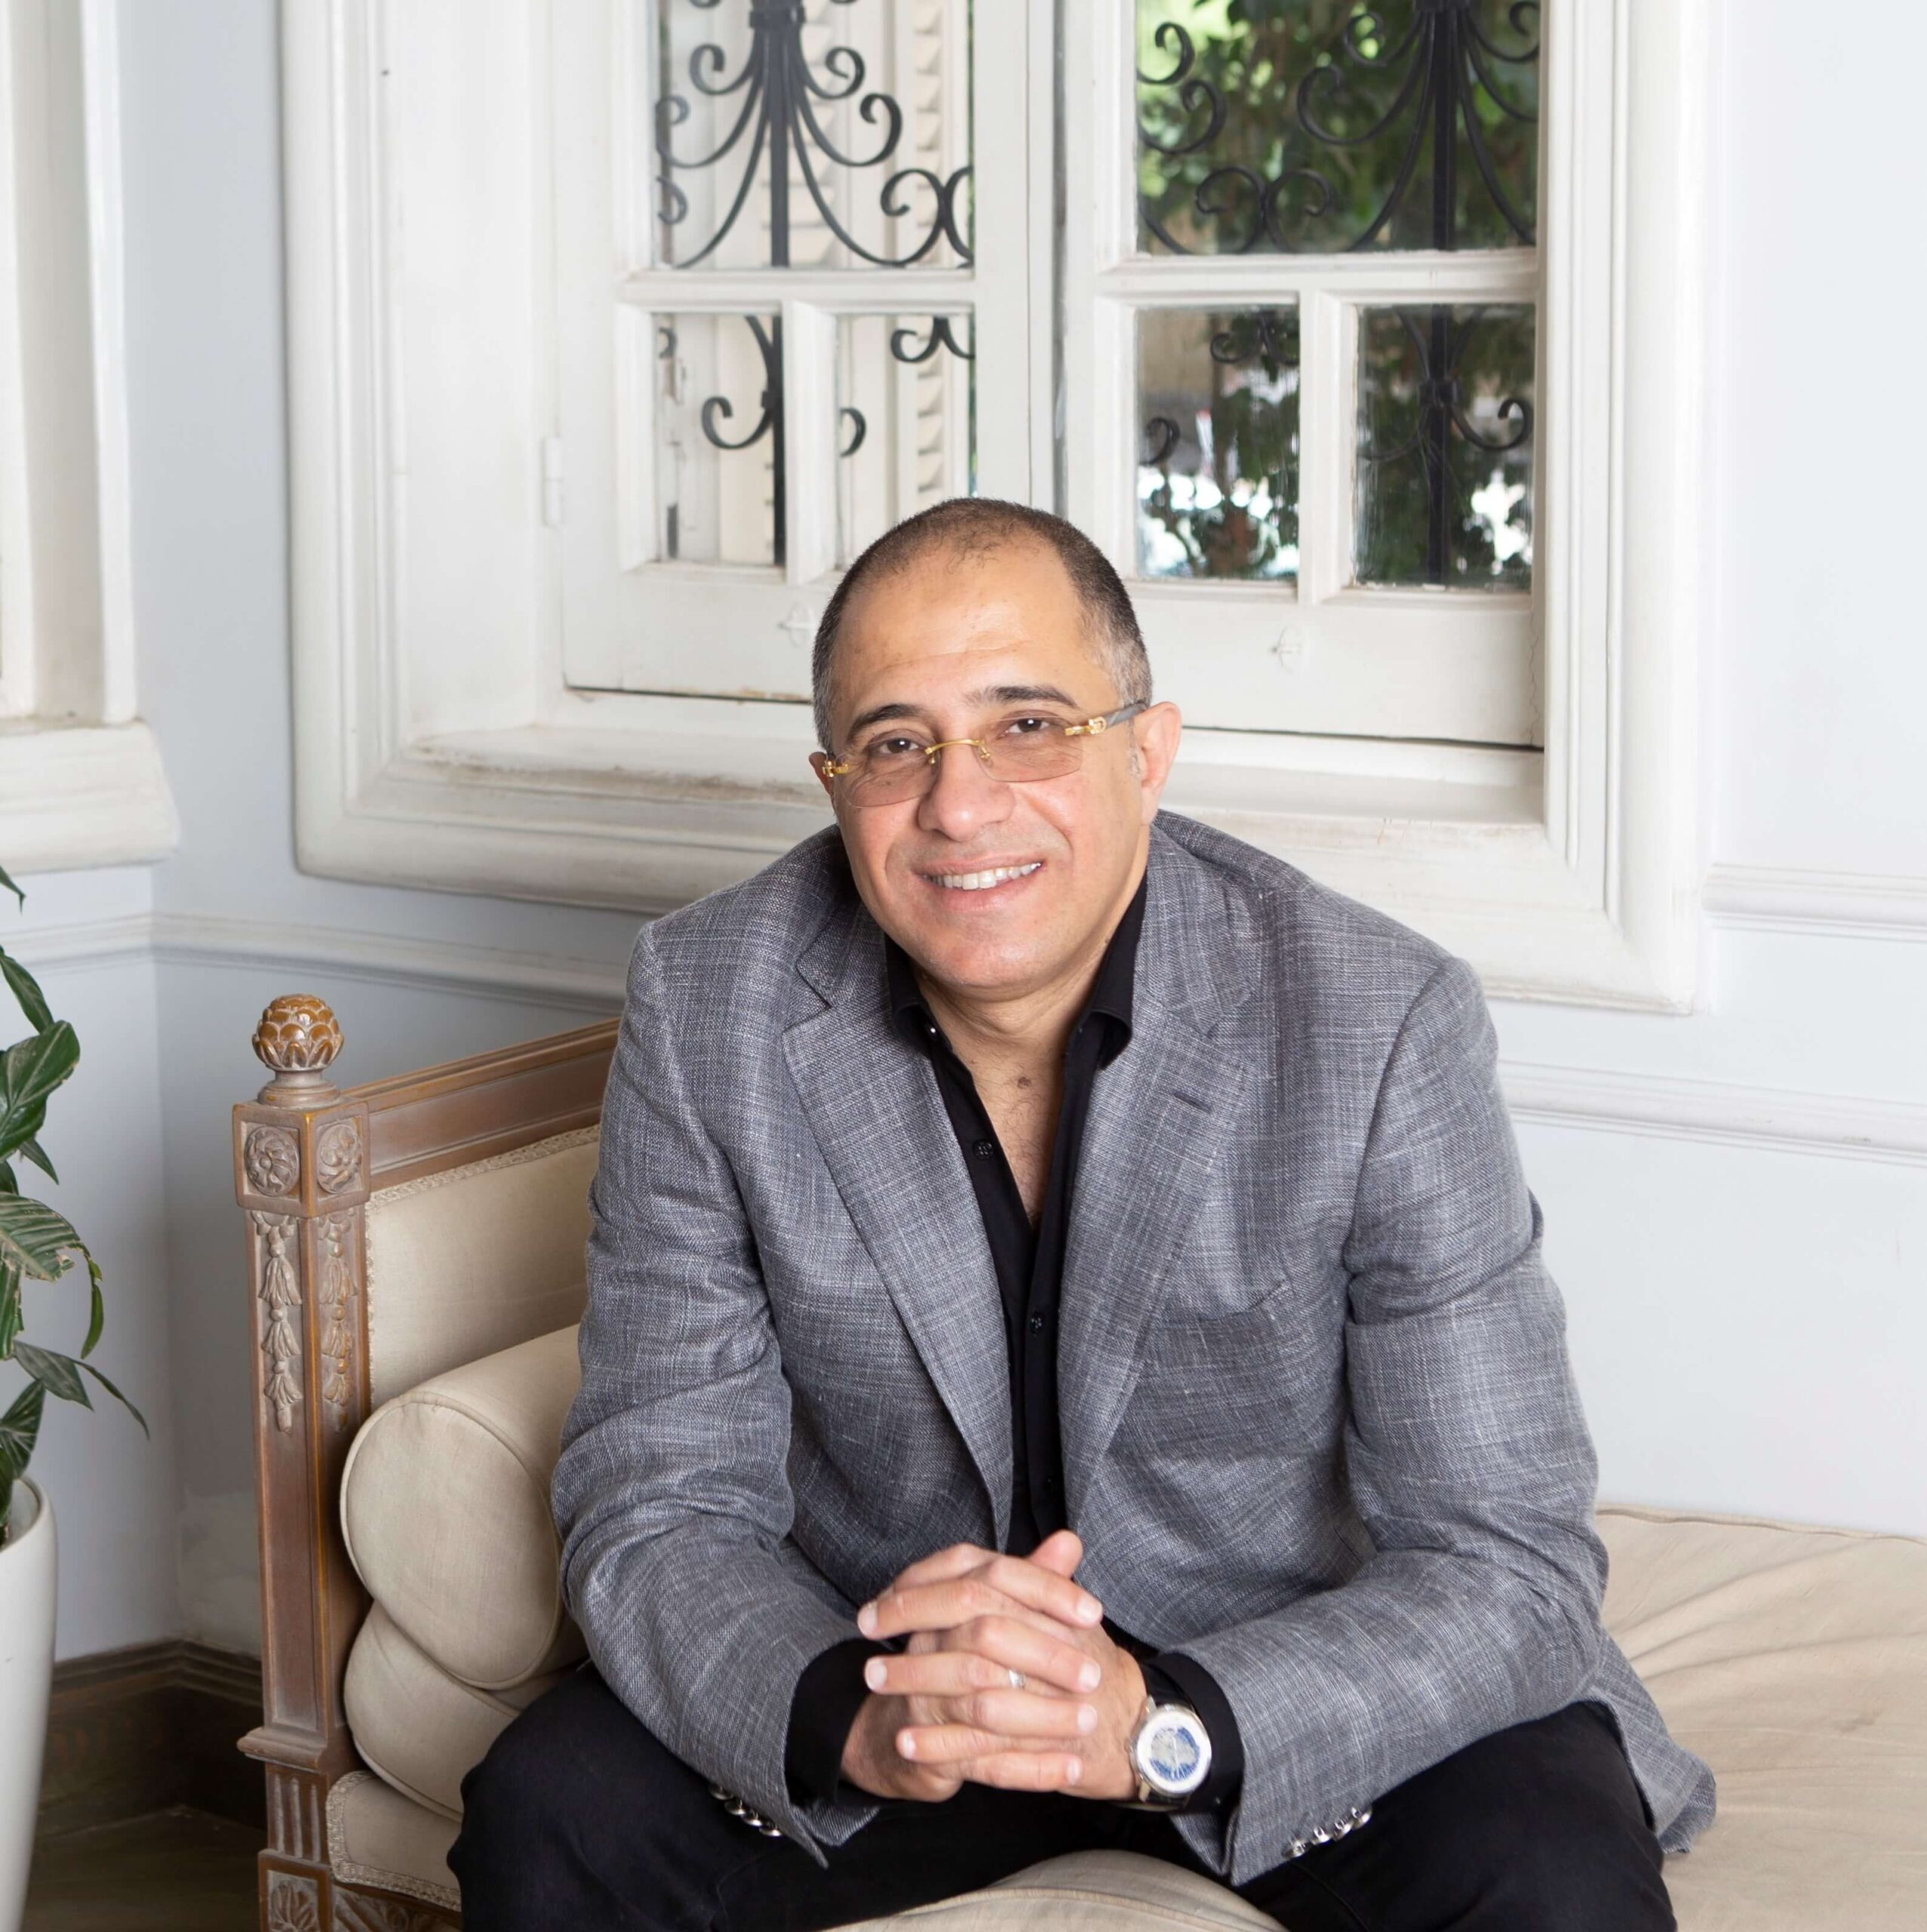 Egypt's Entrepreneur Awards 2021: Meet the Finalists for the Real Estate Award